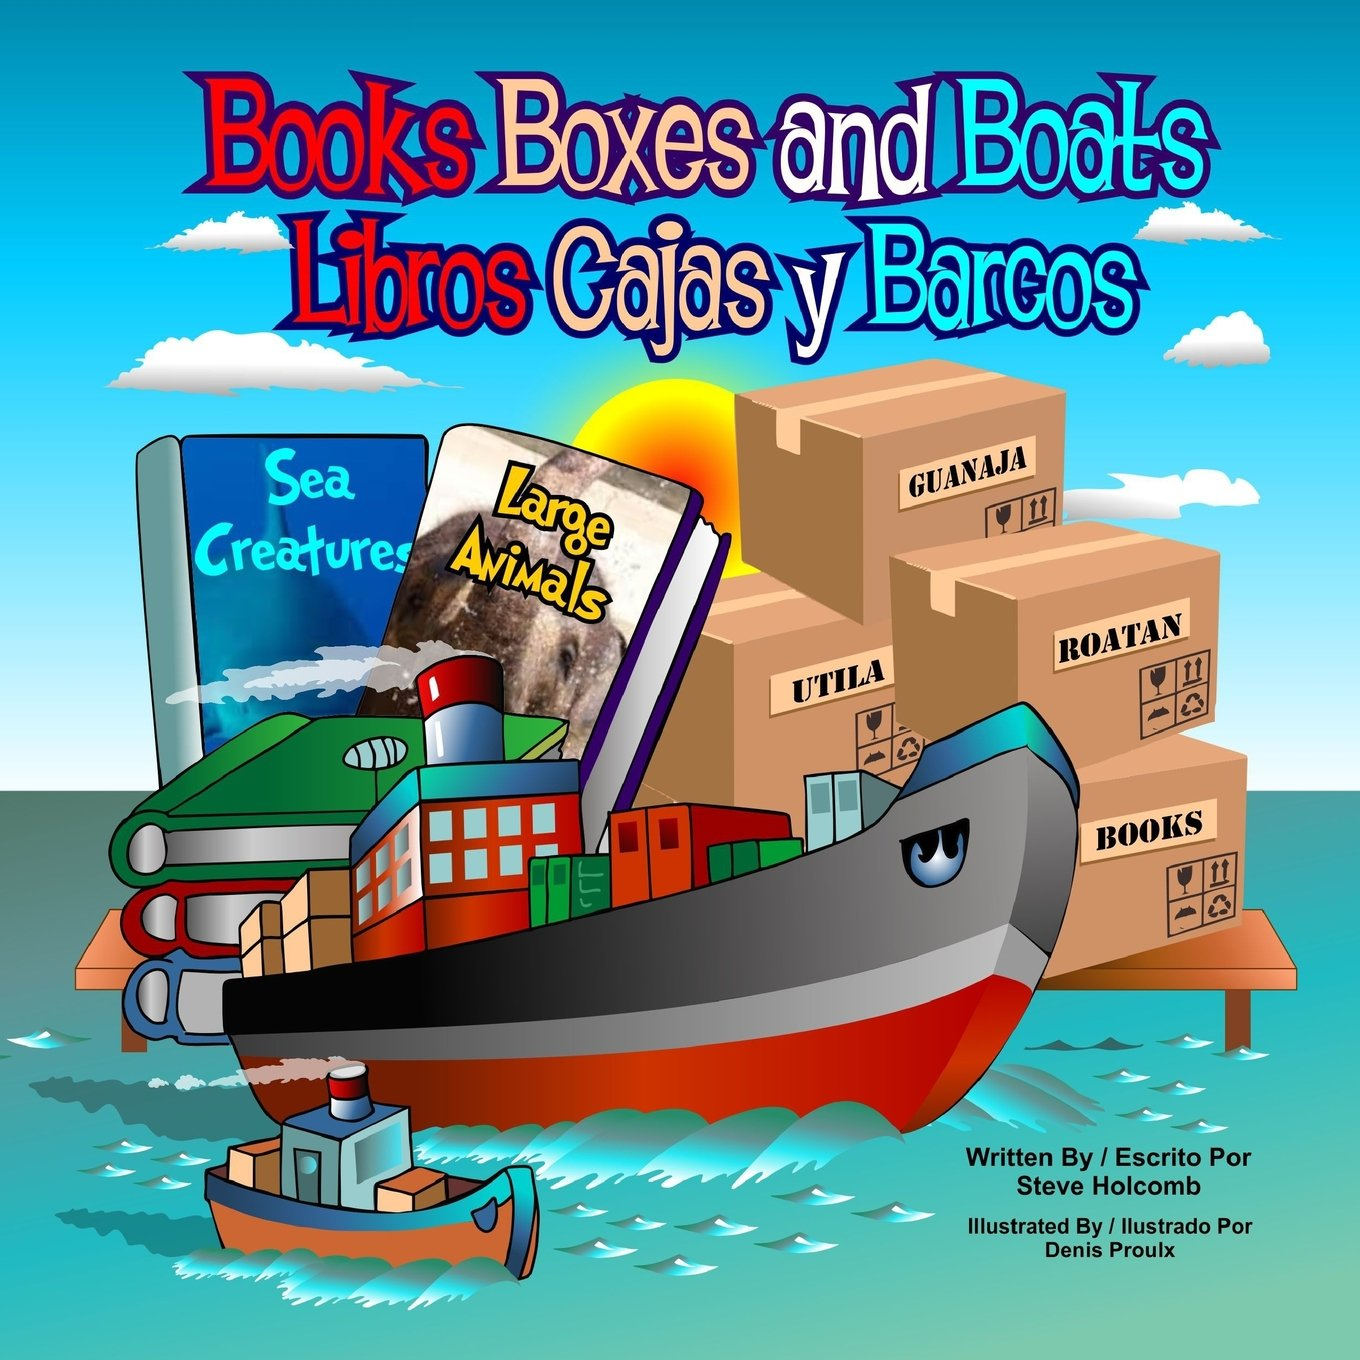 Books Boxes and Boats: Libros Cajas y Barcos Paperback – Large Print, April 4, 2017